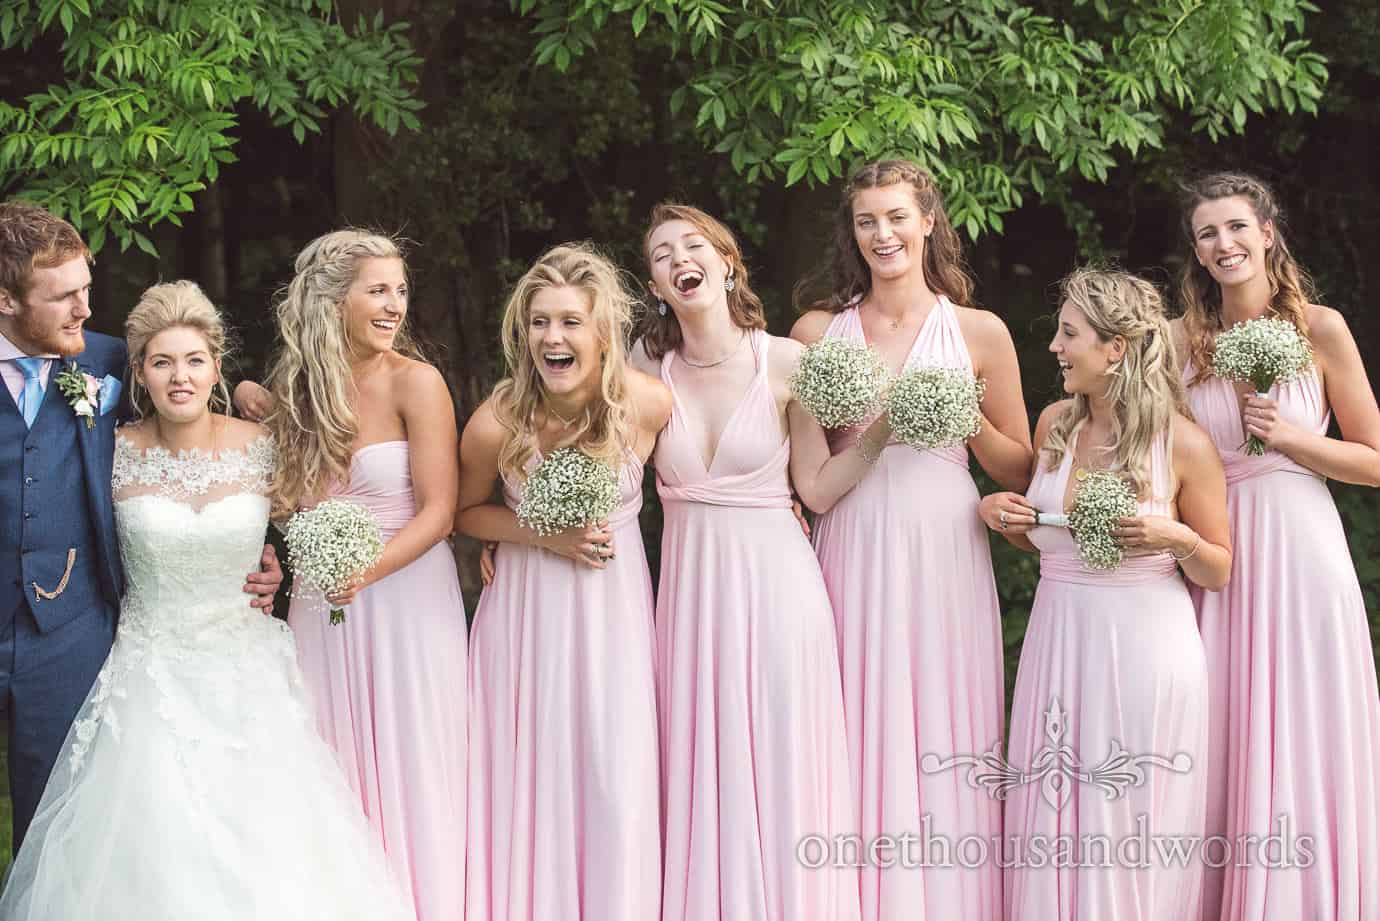 Beautiful bridesmaids in dusty pink Greco-Roman bridesmaids dresses with gypsophila bouquets